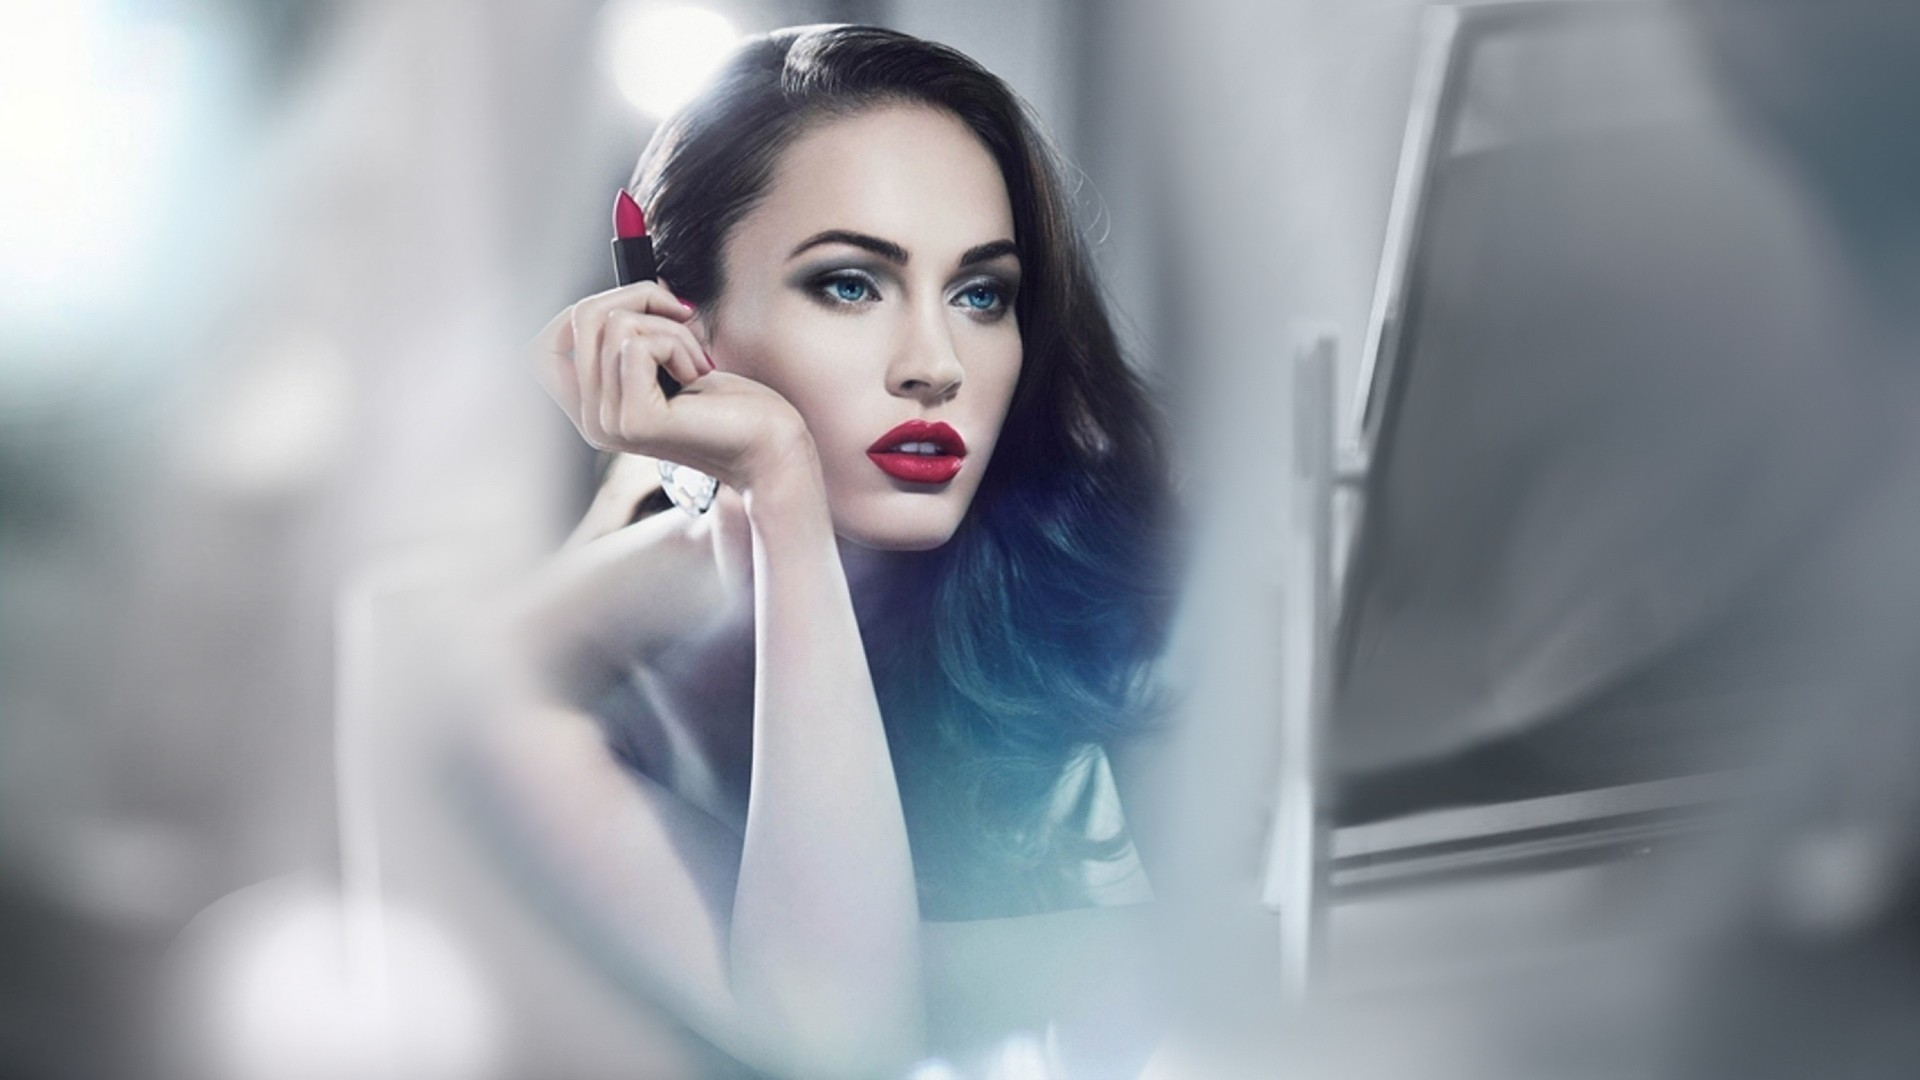 Megan Fox Hd Wallpapers 1080p \x3cb\x3emegan fox wallpapers\x3cb\x3e 1920x1080